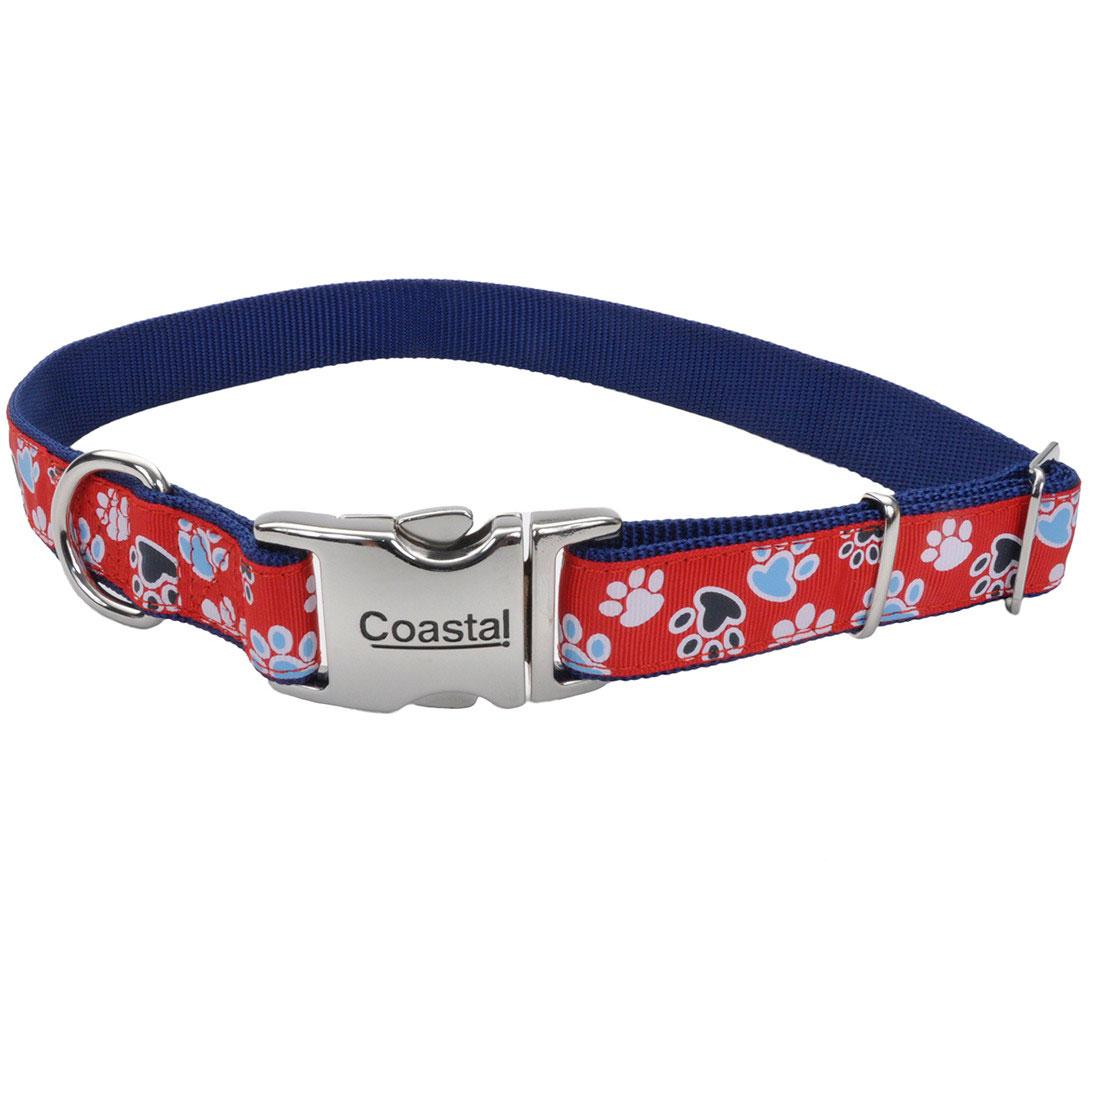 Ribbon Adjustable Collar with Metal Buckle for Dogs, Red with Paws, 1-in x 18-26-in